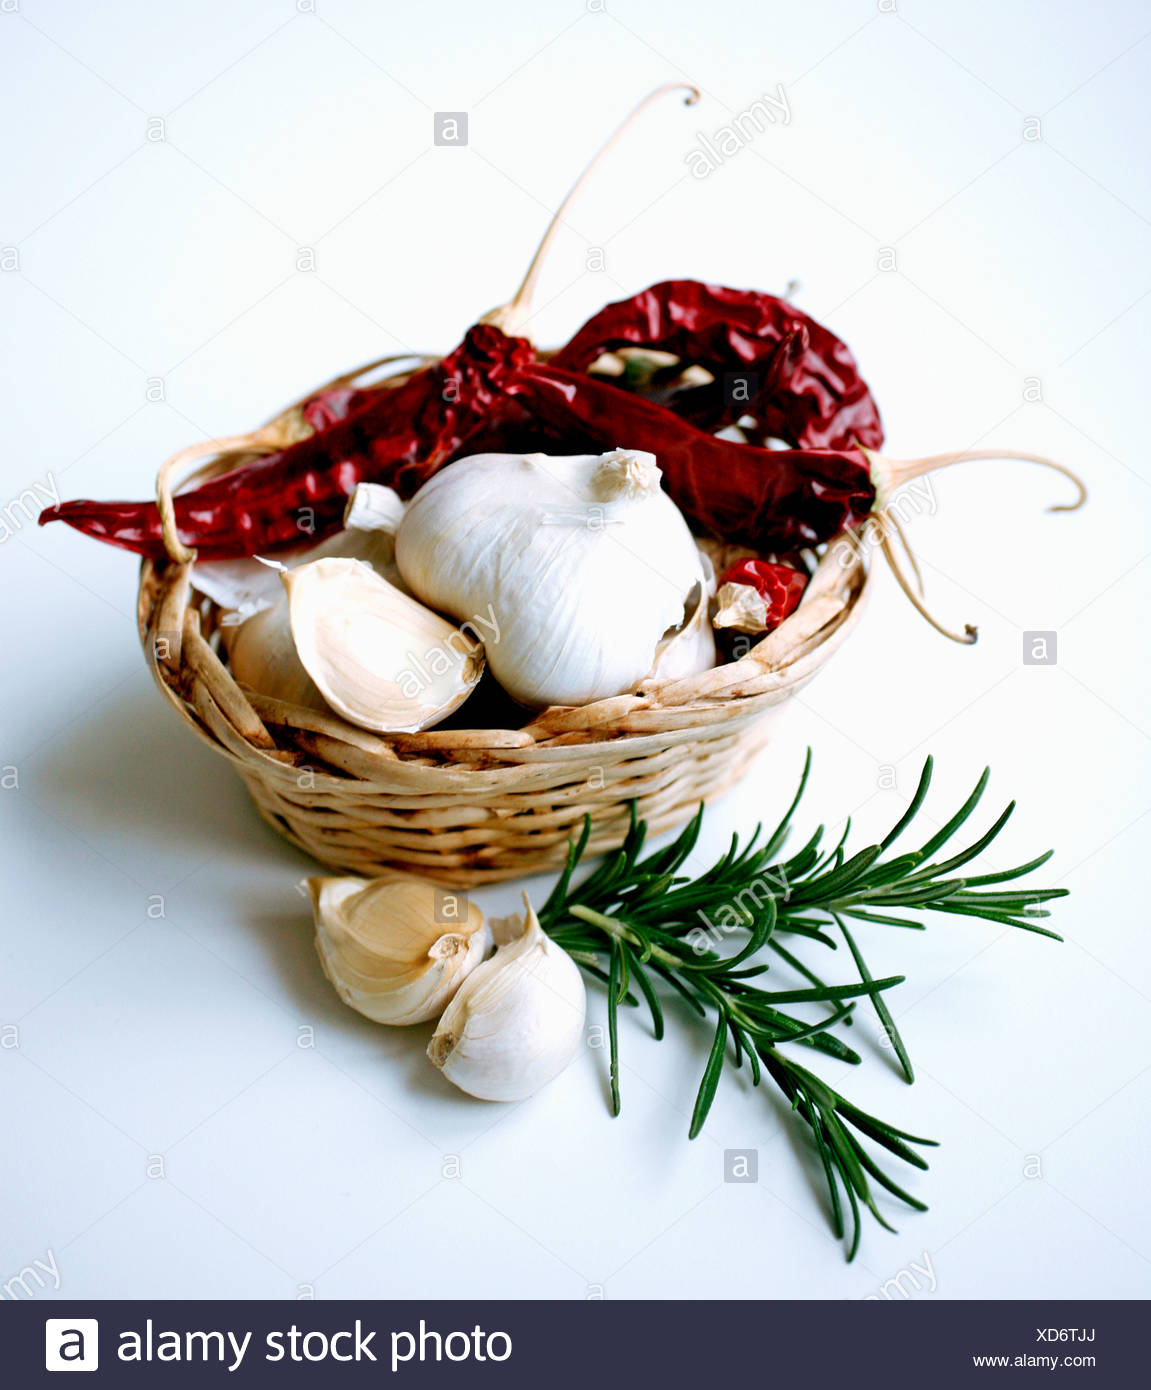 Fresh spices over white background - Stock Image